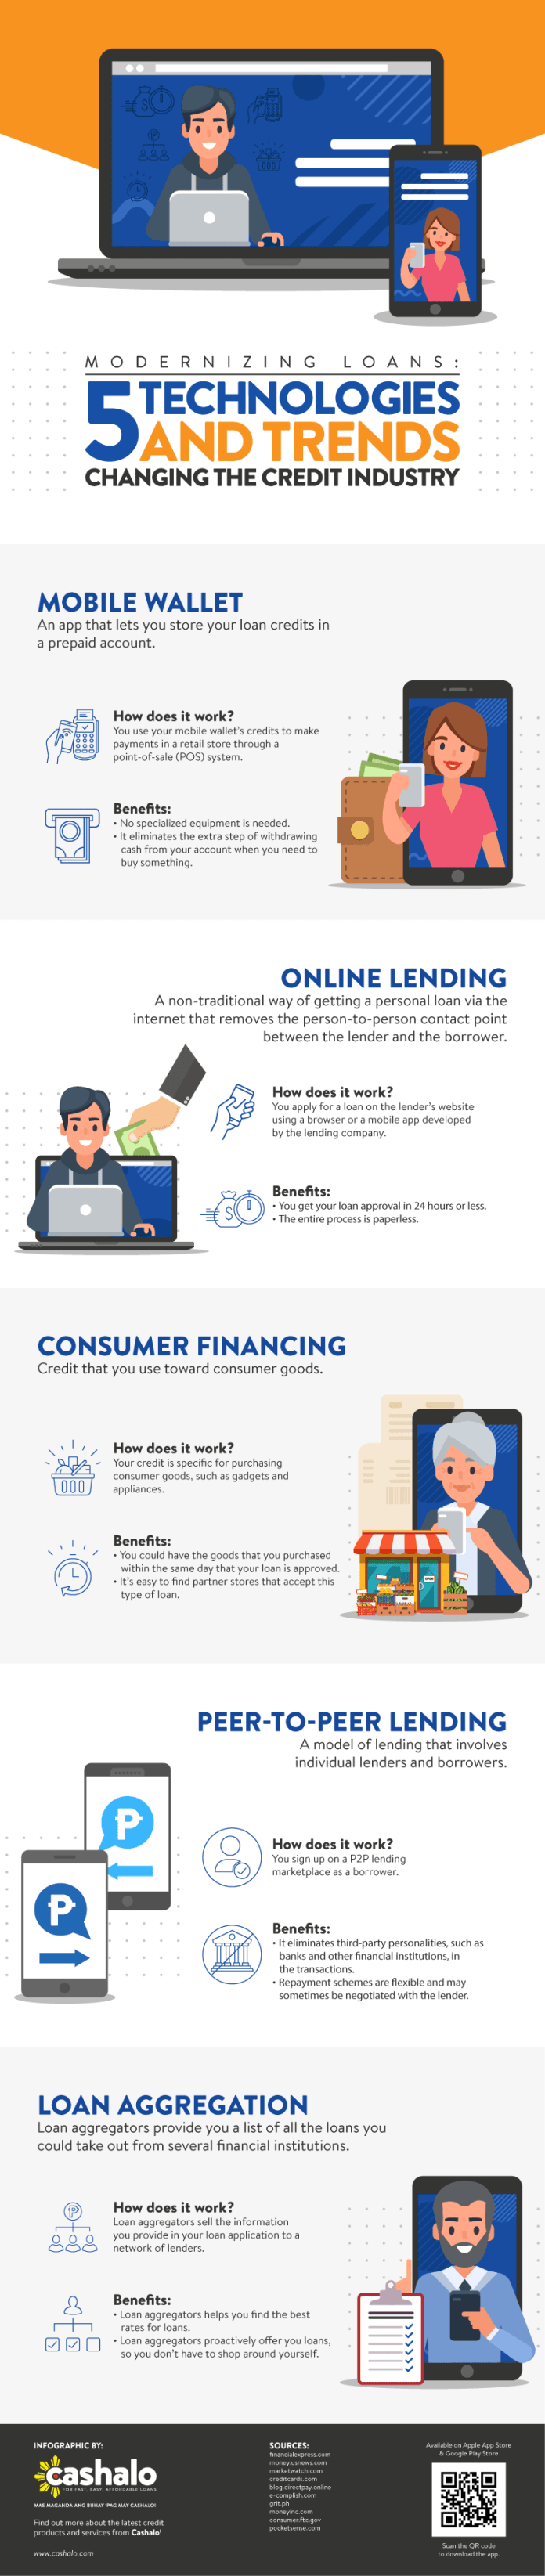 5 Technologies And Trends Changing The Credit Industry